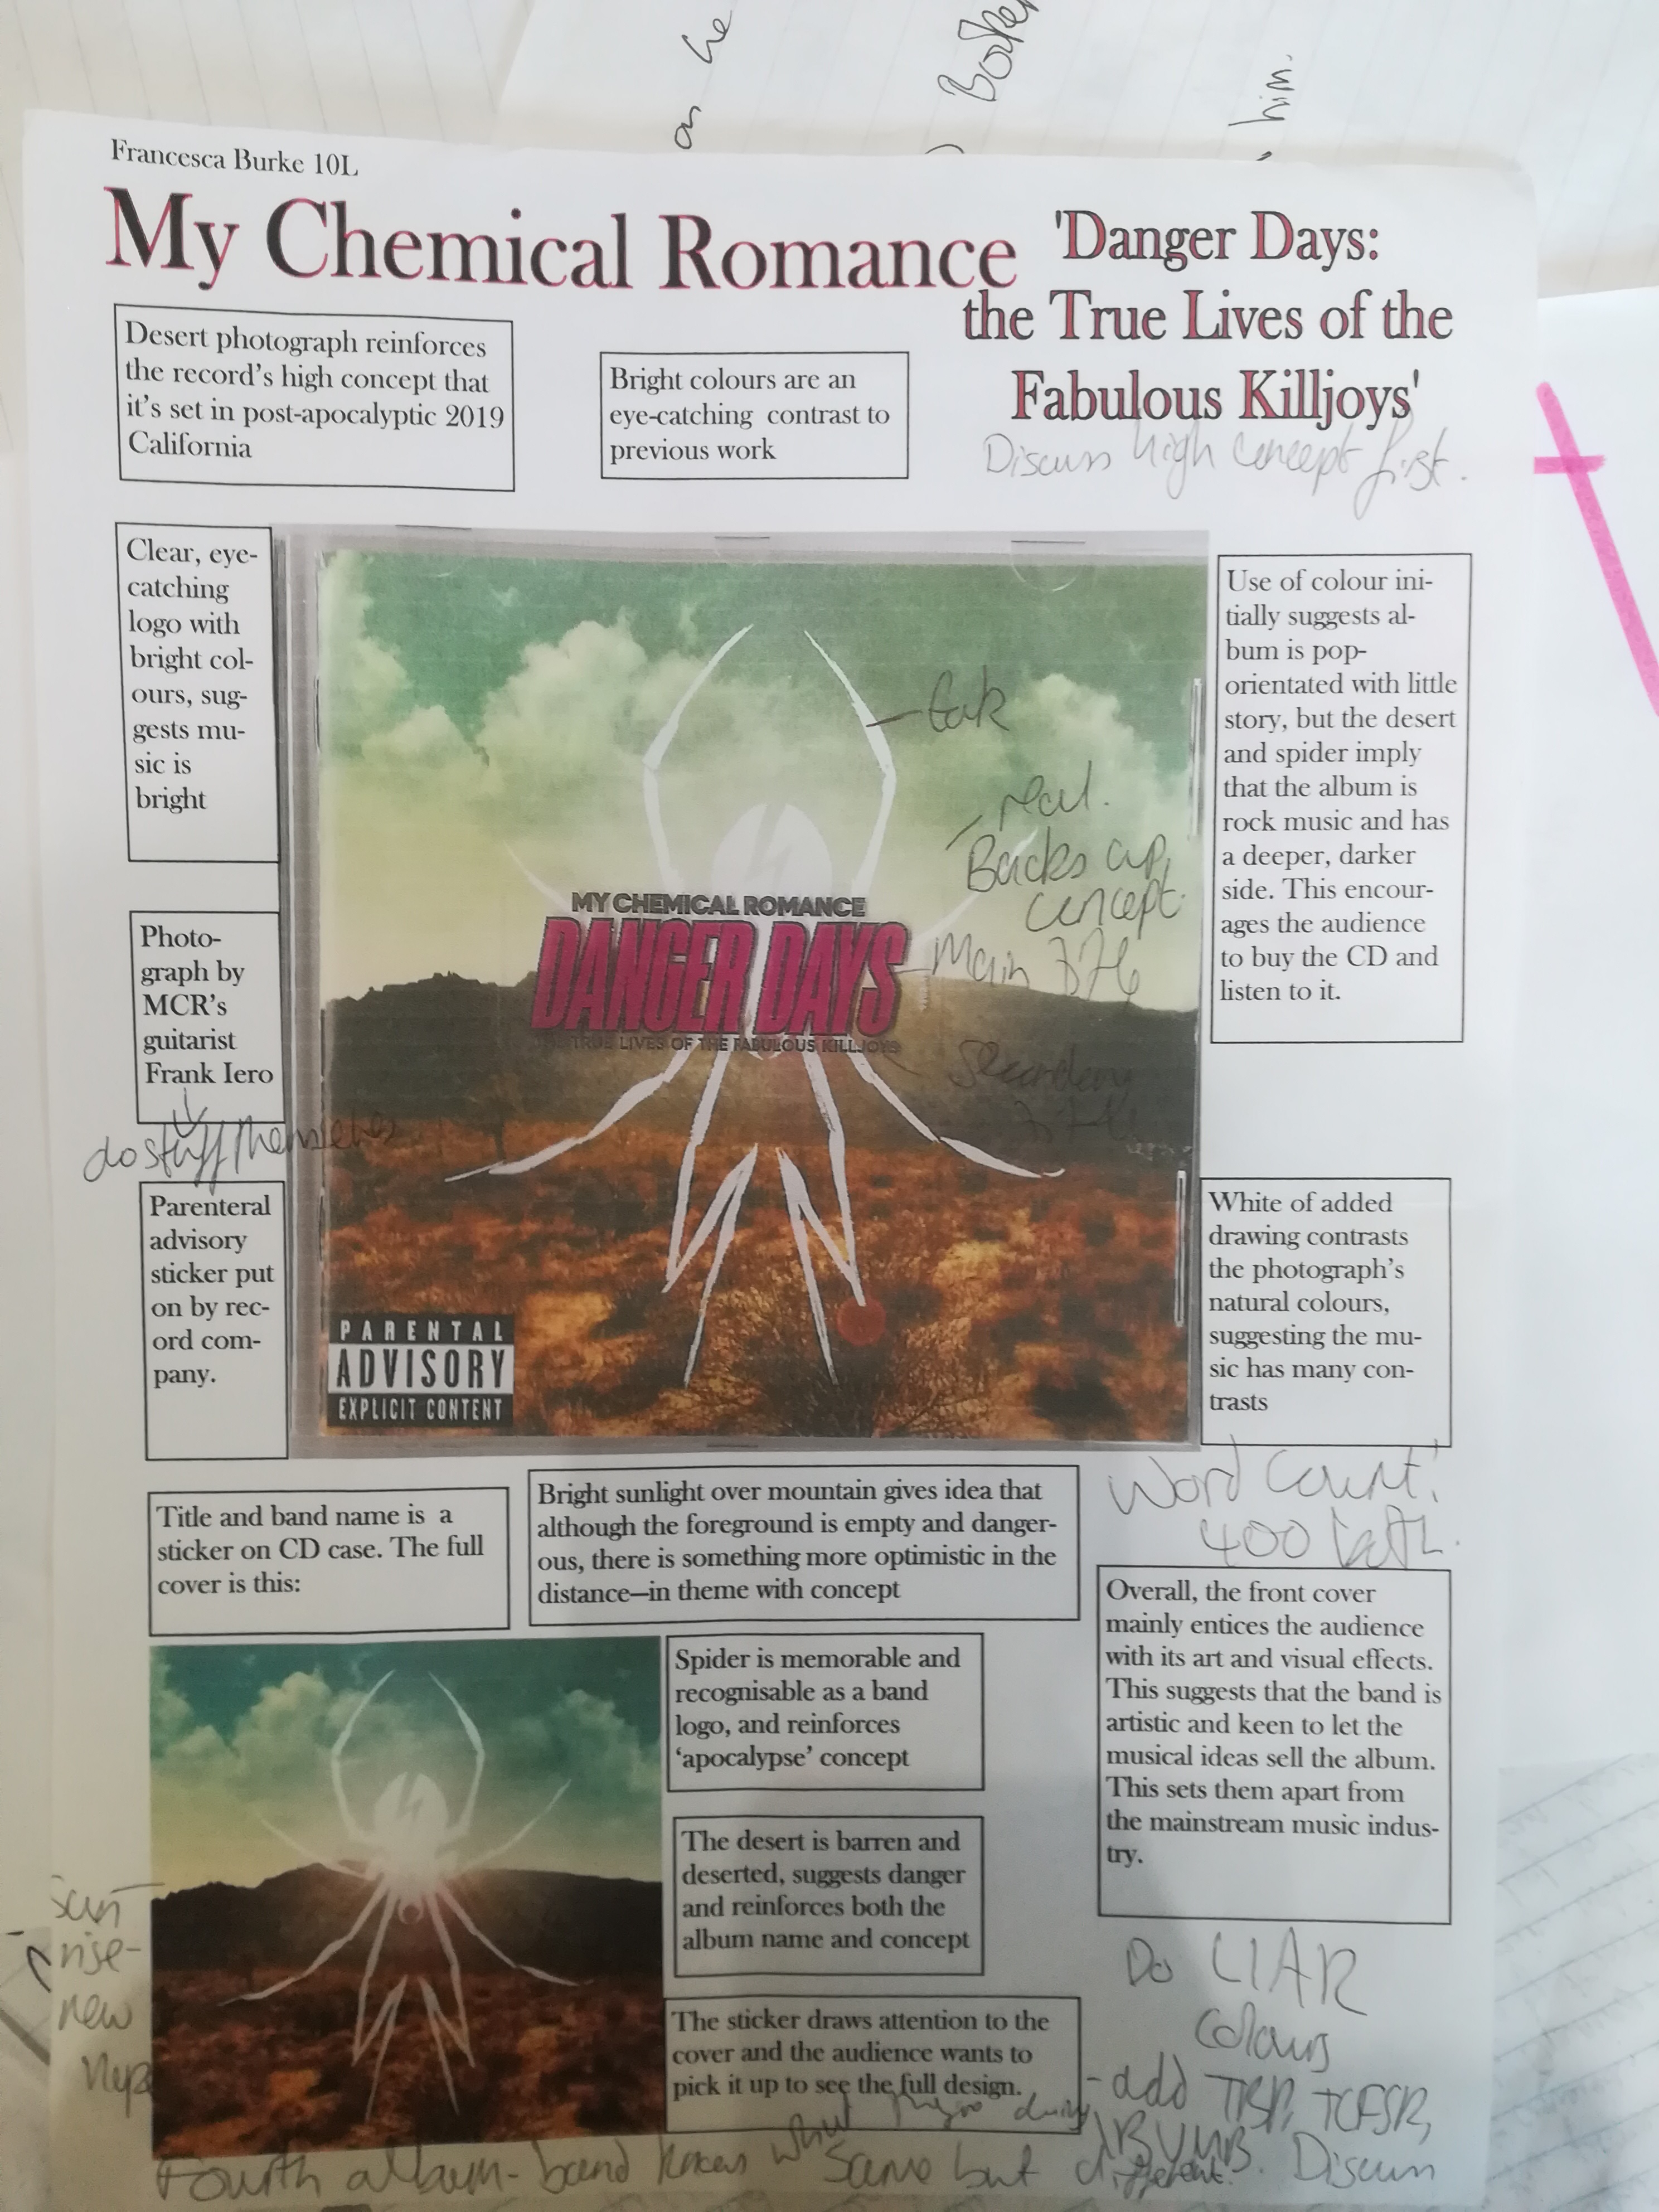 notes in text boxes around a cover of LIAR analysis and text around the cover of My Chemical Romance's album Danger Days: the True Lives of the Fabulous Killjoys'